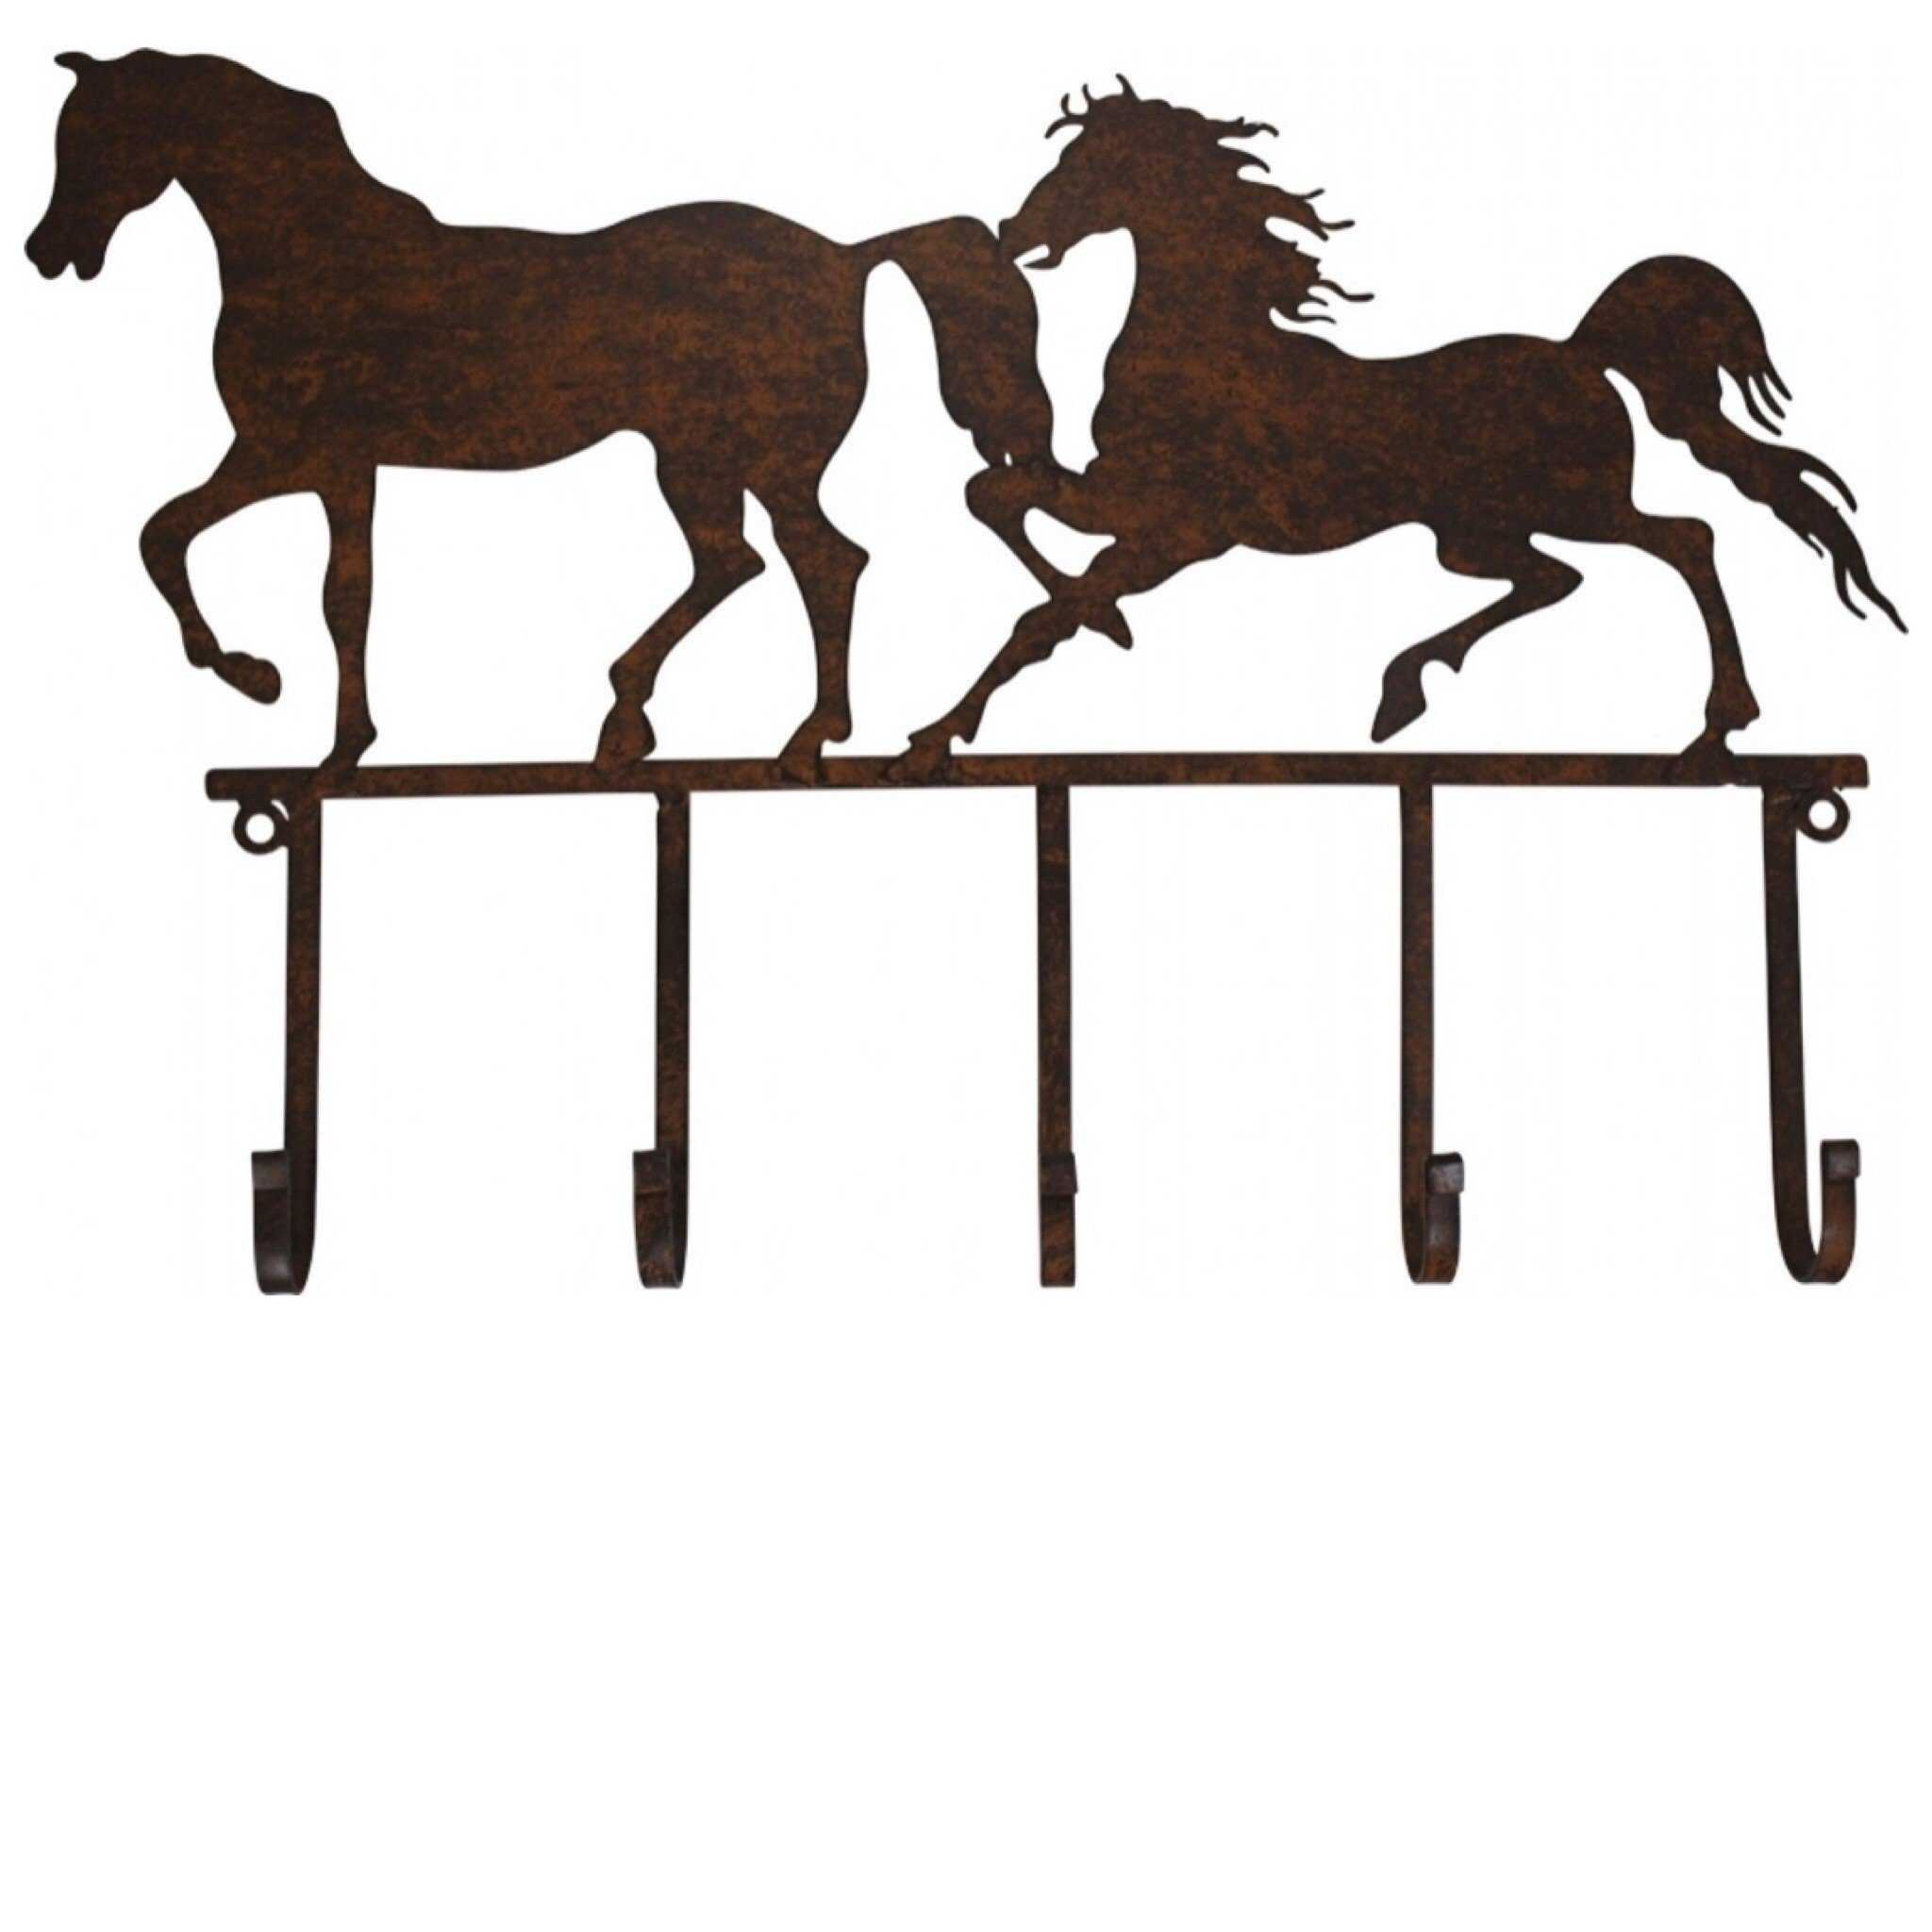 Hook Horses Horse Two Rustic Metal Hooks & Hangers The Renmy Store